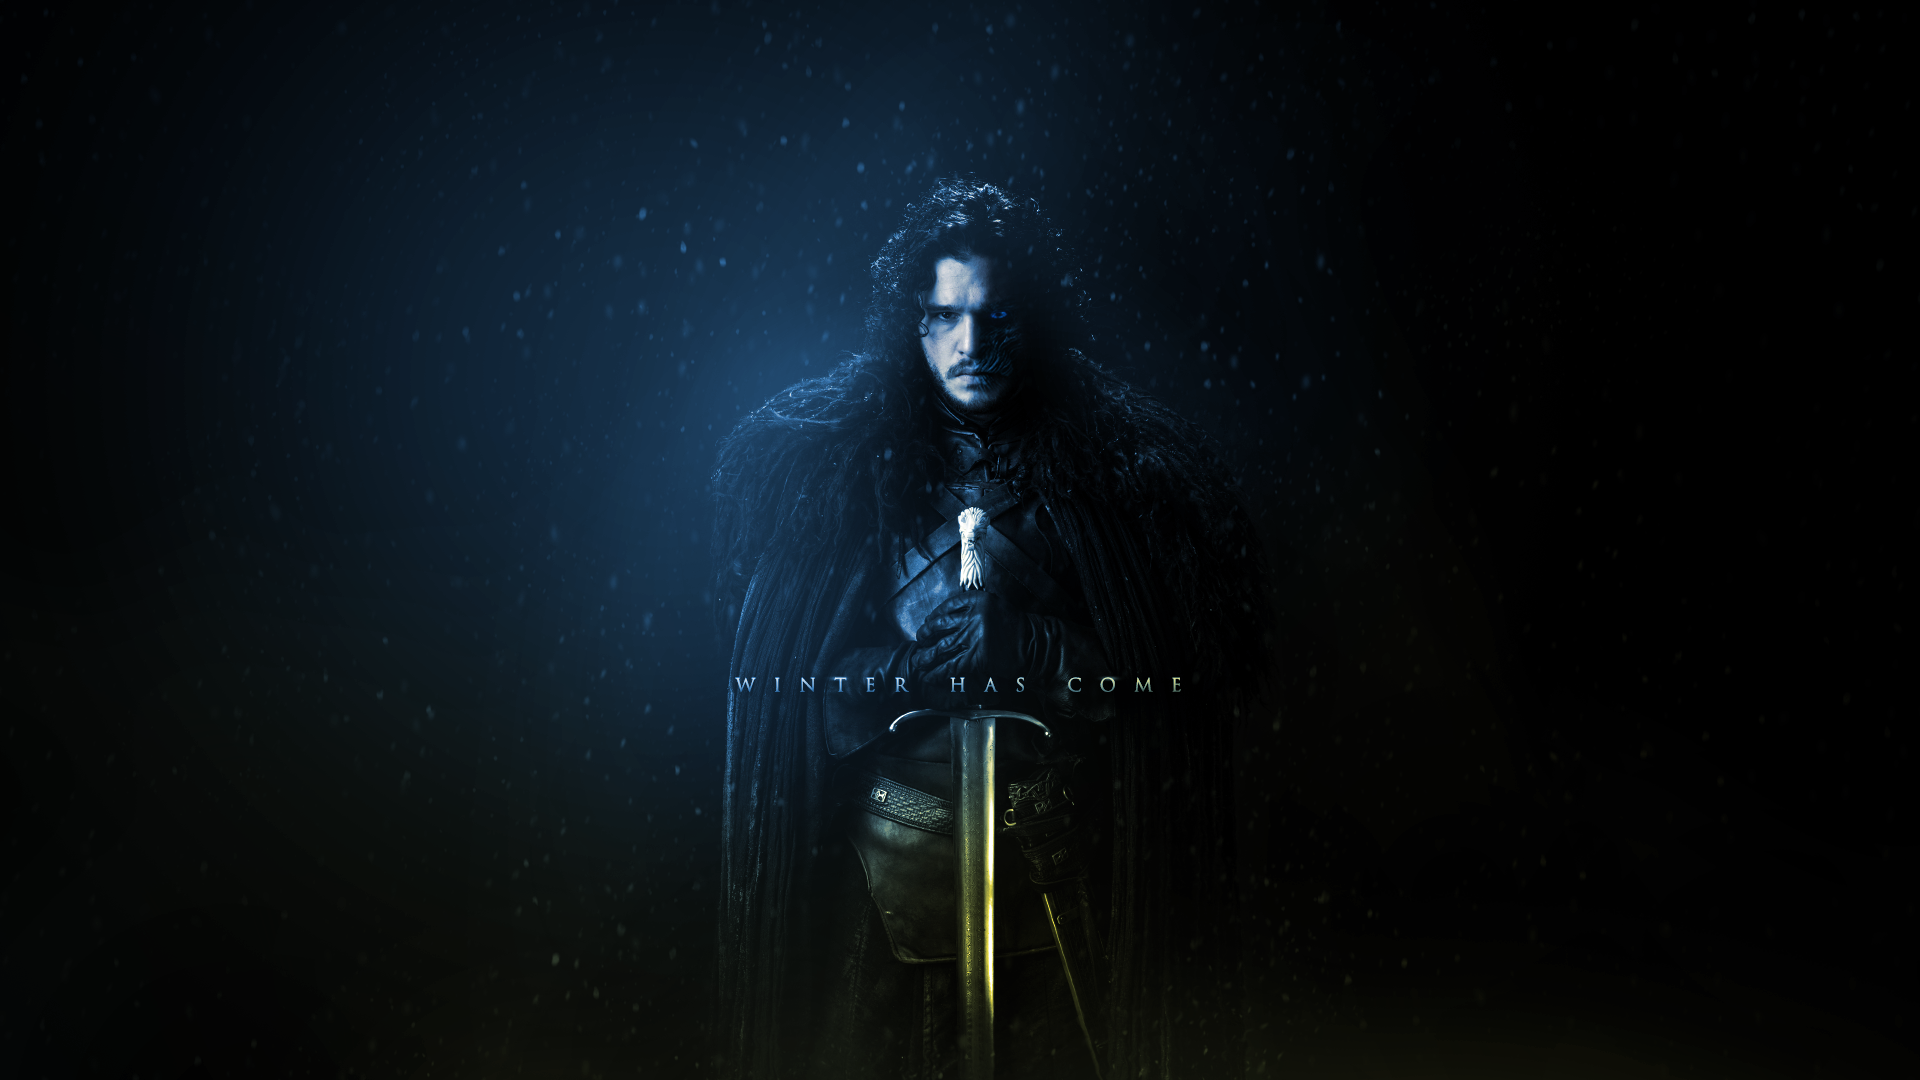 Game Of Thrones Winter Has Come 1920x1080 Beautiful Wallpaper